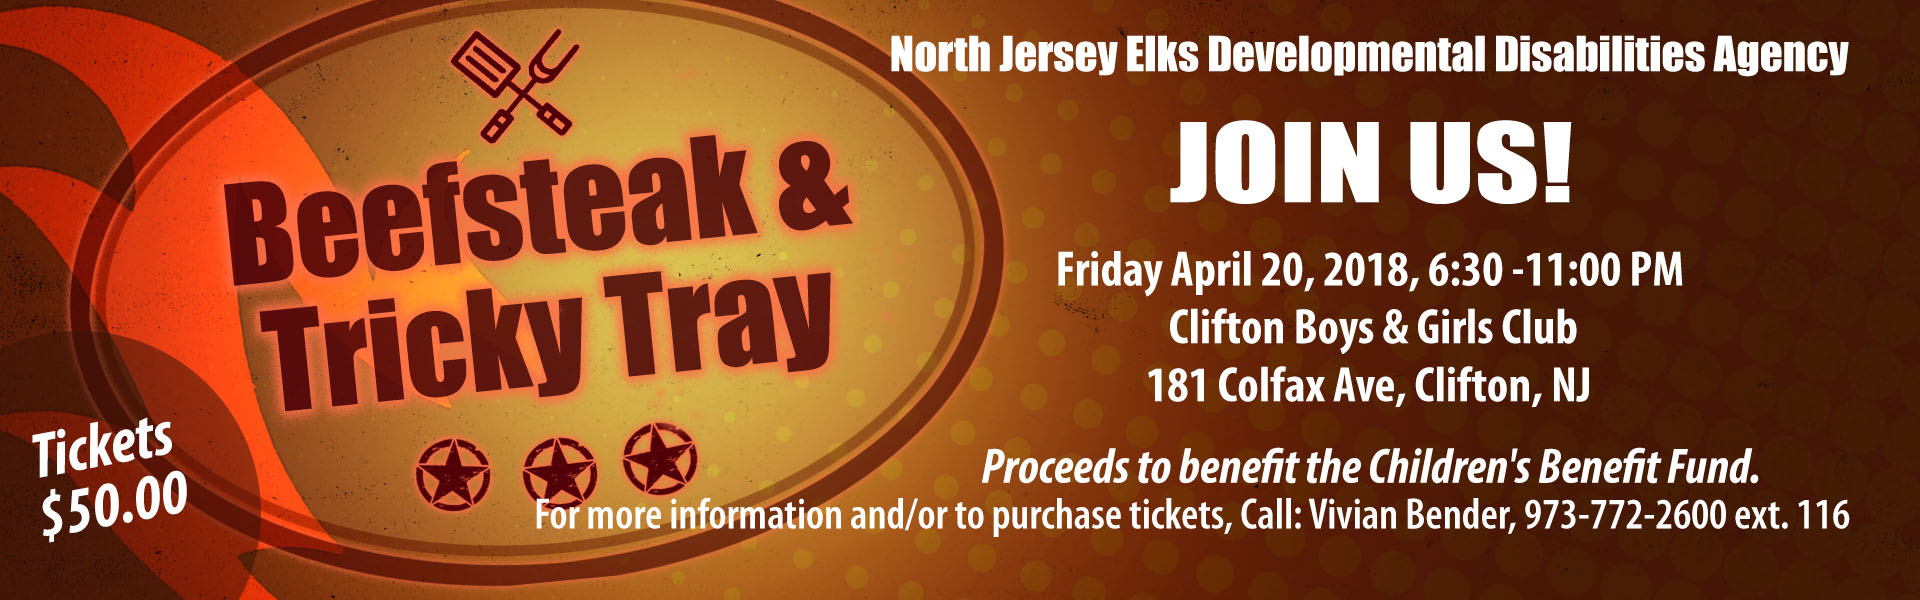 Beefsteak and Tricky Tray event announcement